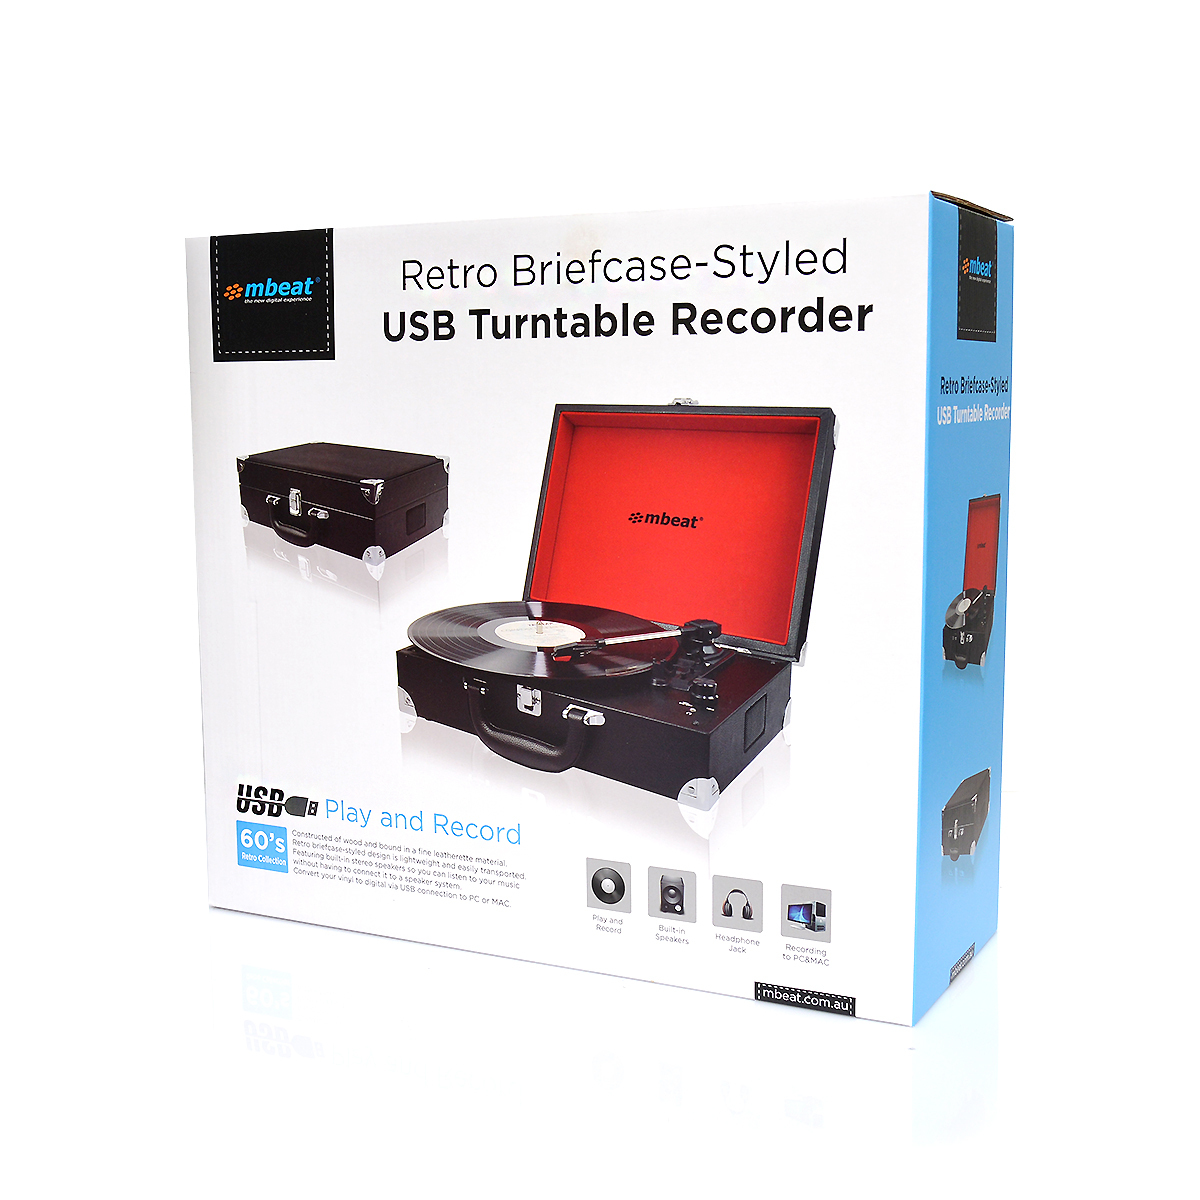 mBeat Retro Briefcase USB Turntable image